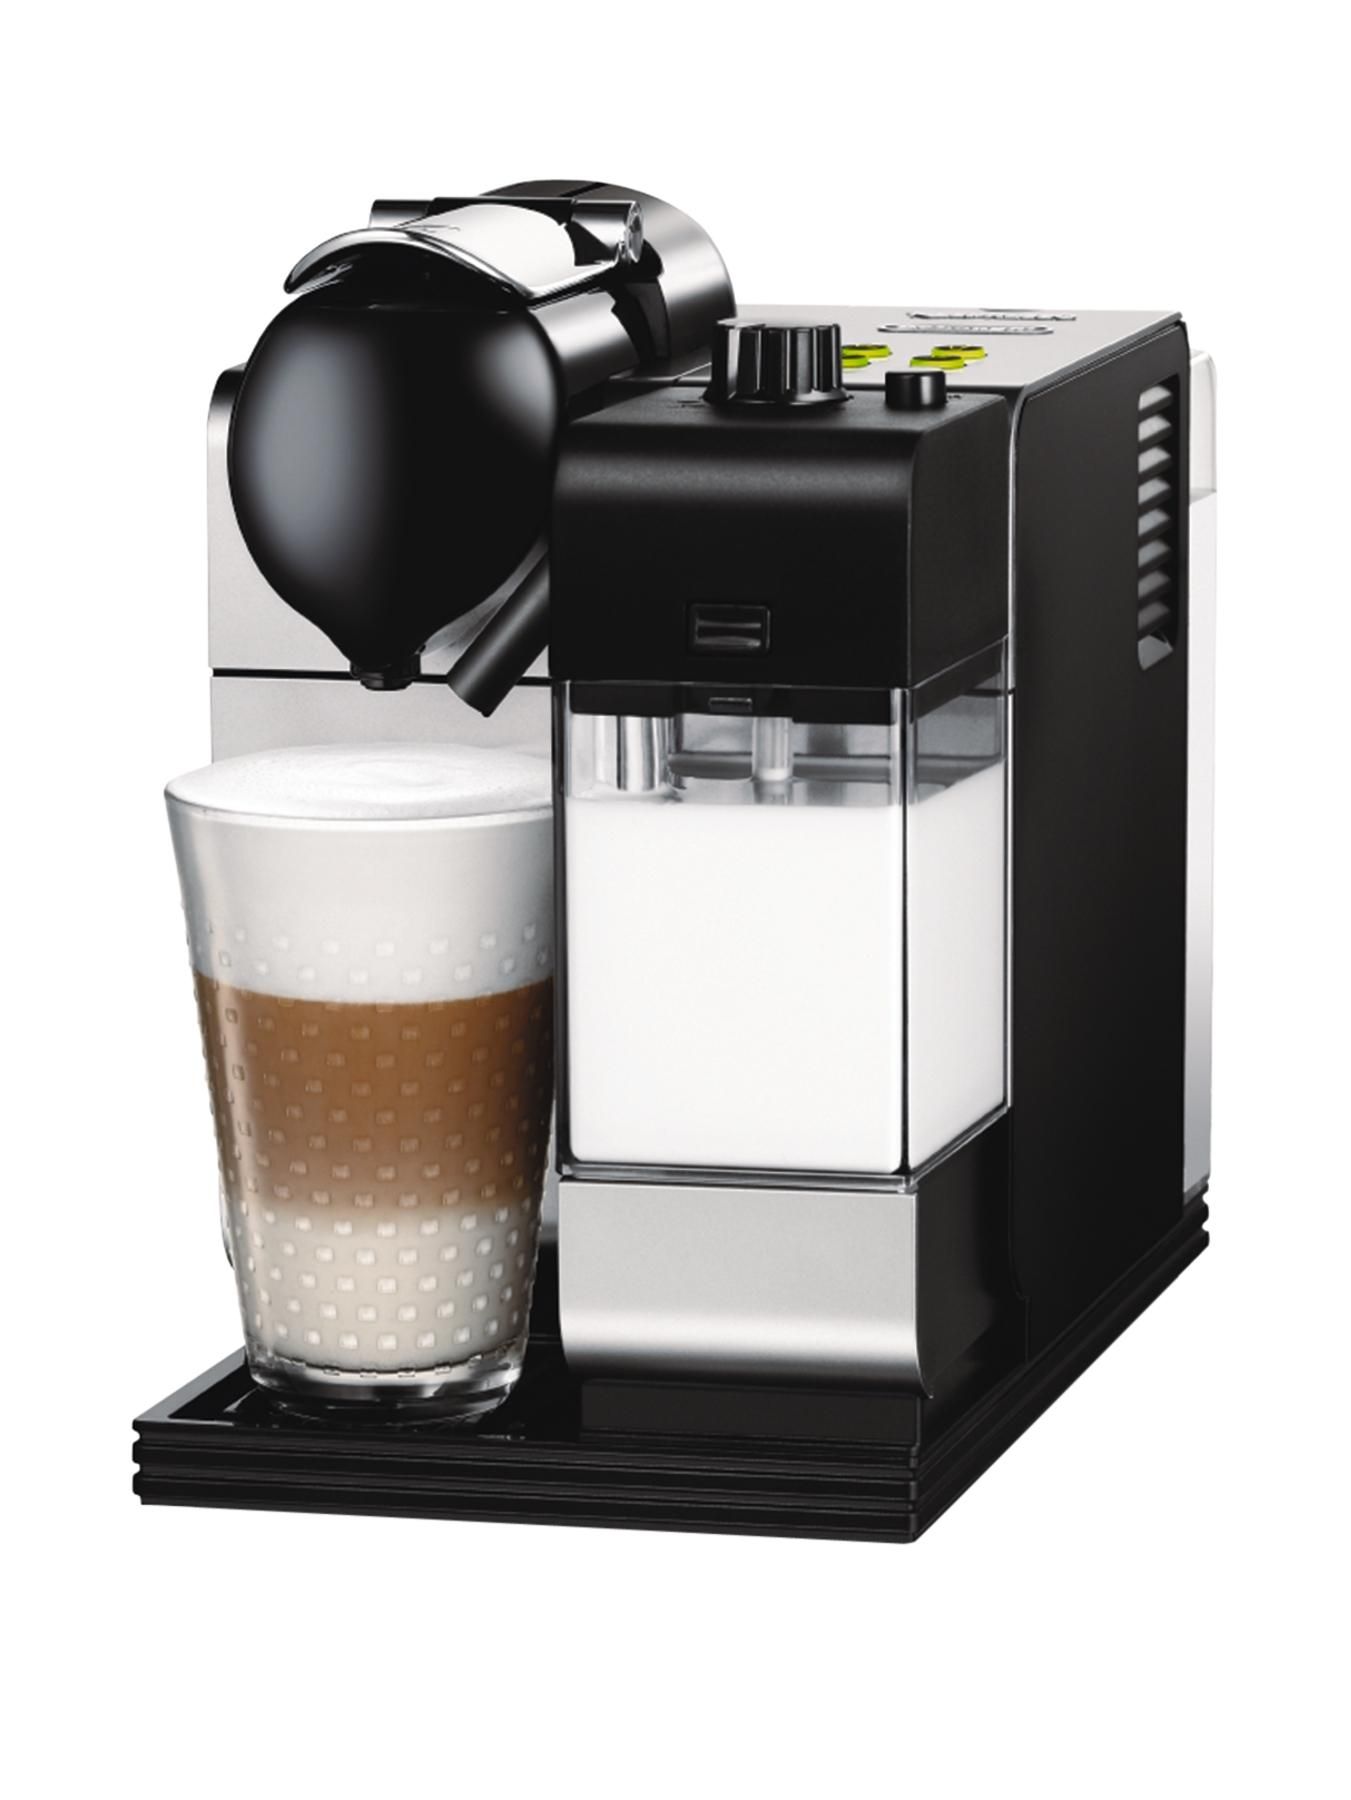 EN520S Nespresso Lattissima Coffee Machine - Silver